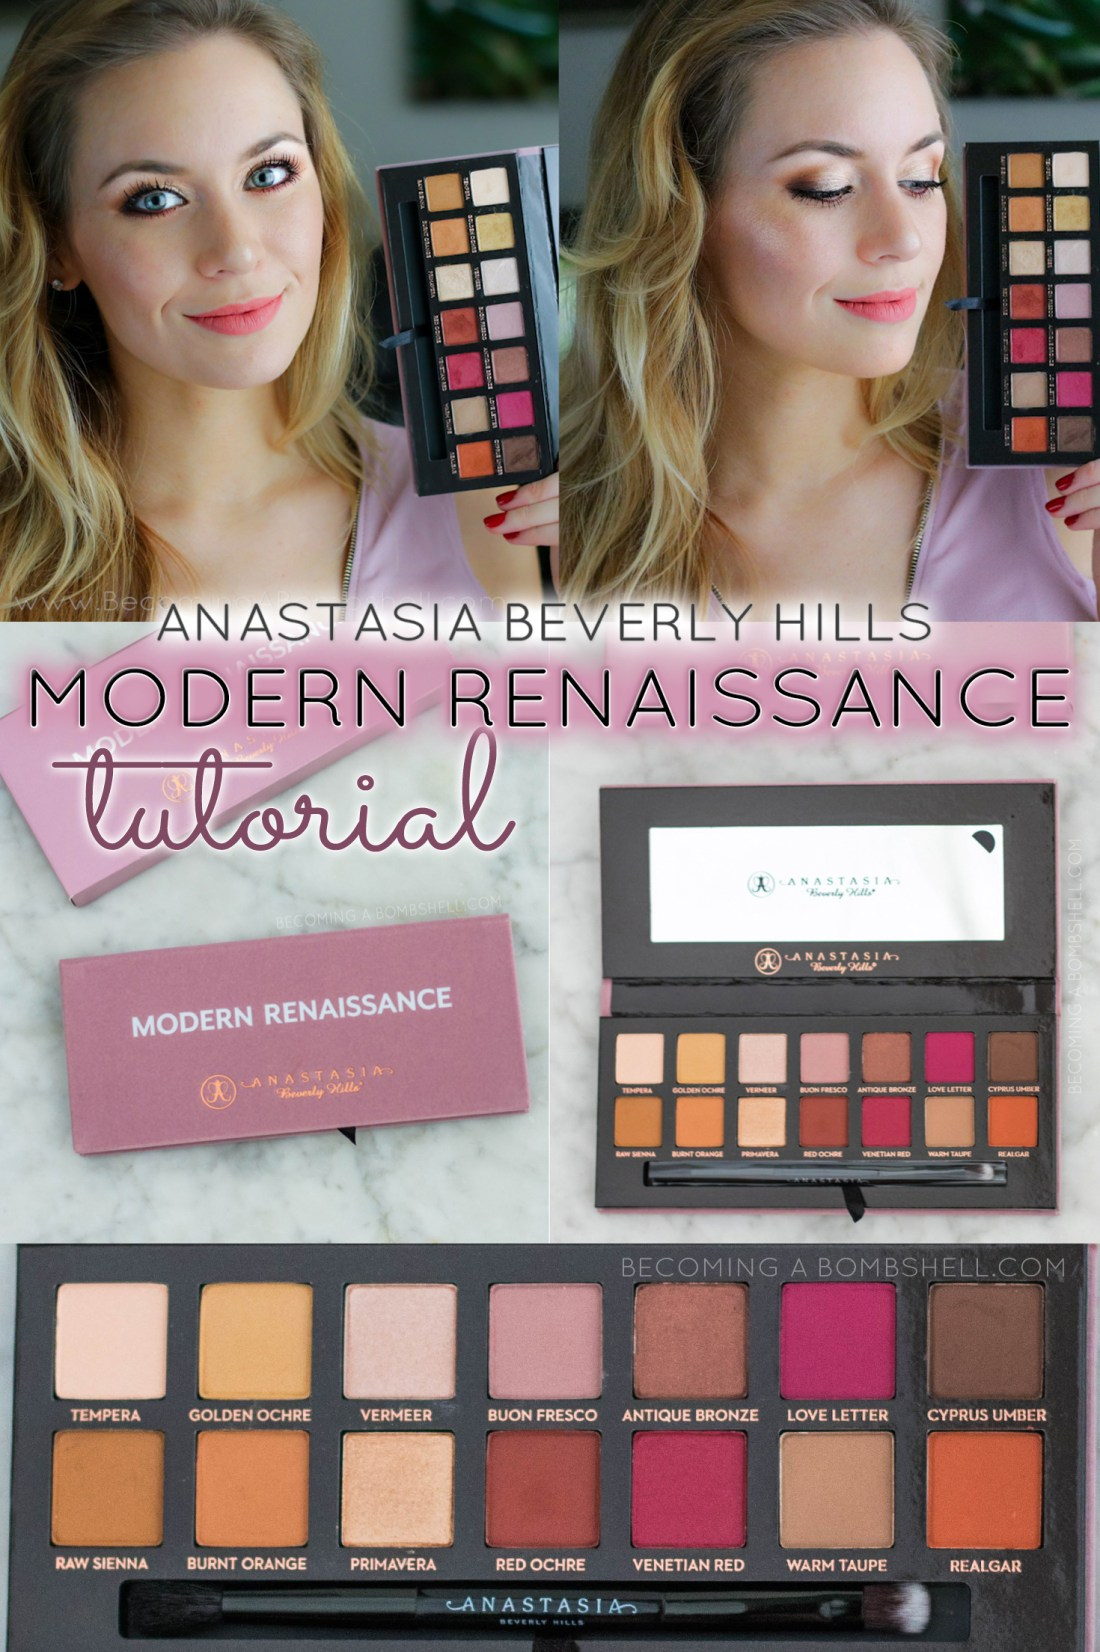 Anastasia Beverly Hills Modern Renaissance Palette Eyeshadow Video Tutorial - Unbelievable pigmentation and the smooth, buttery texture totally surprised me and I have swatched hundreds (thousands?) of eyeshadows. I cannot think of any that share this unique silky smoothness and brilliant blendability. First use yesterday and from my first impressions these are some of the highest quality shadows ever! Everyday, easy & beautiful eyeshadow look.